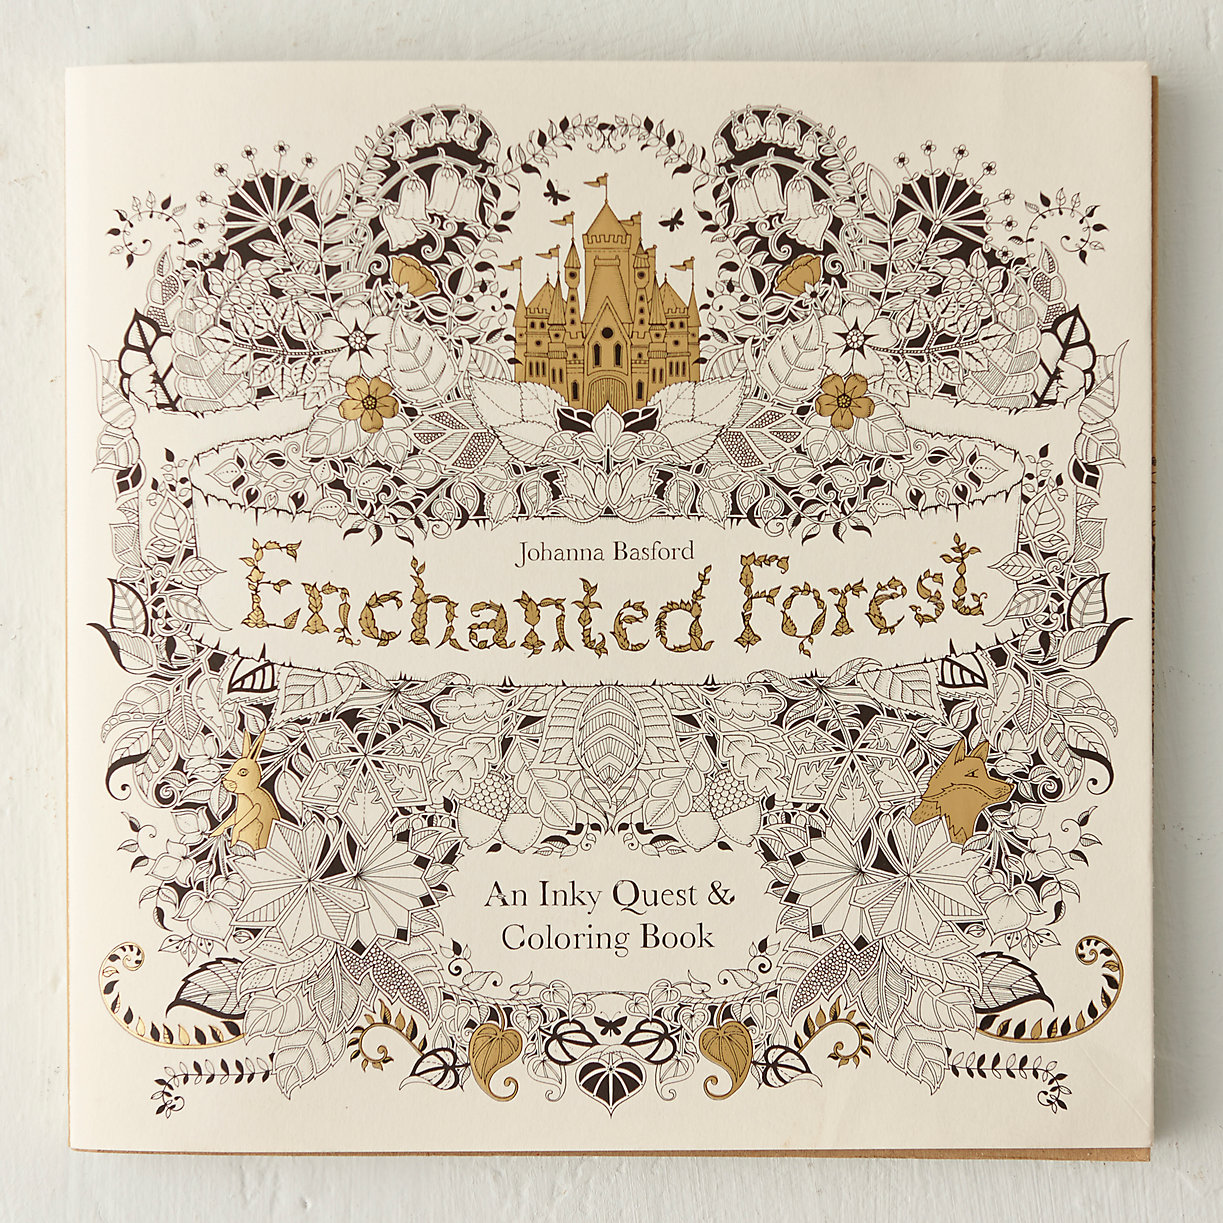 Enchanted forest coloring book website -  Enchanted Forest 35344449_000_a 35344449_000_b